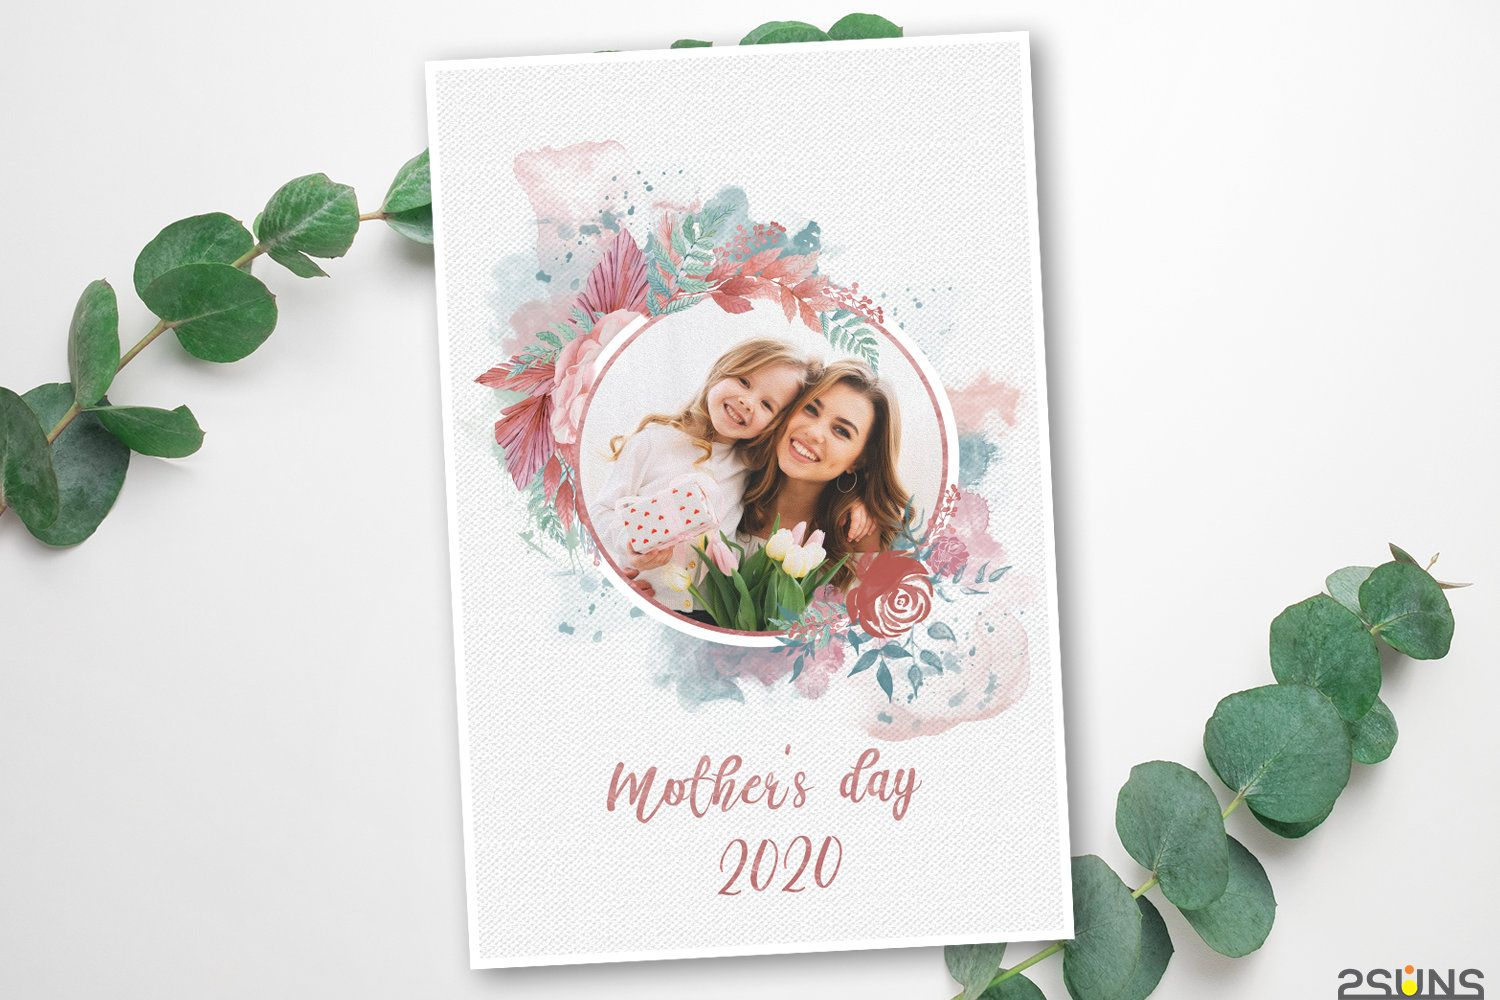 Mothers Day Template Mothers Day Card Photoshop Clipping Etsy Photoshop Template Photography Marketing Boards Photoshop